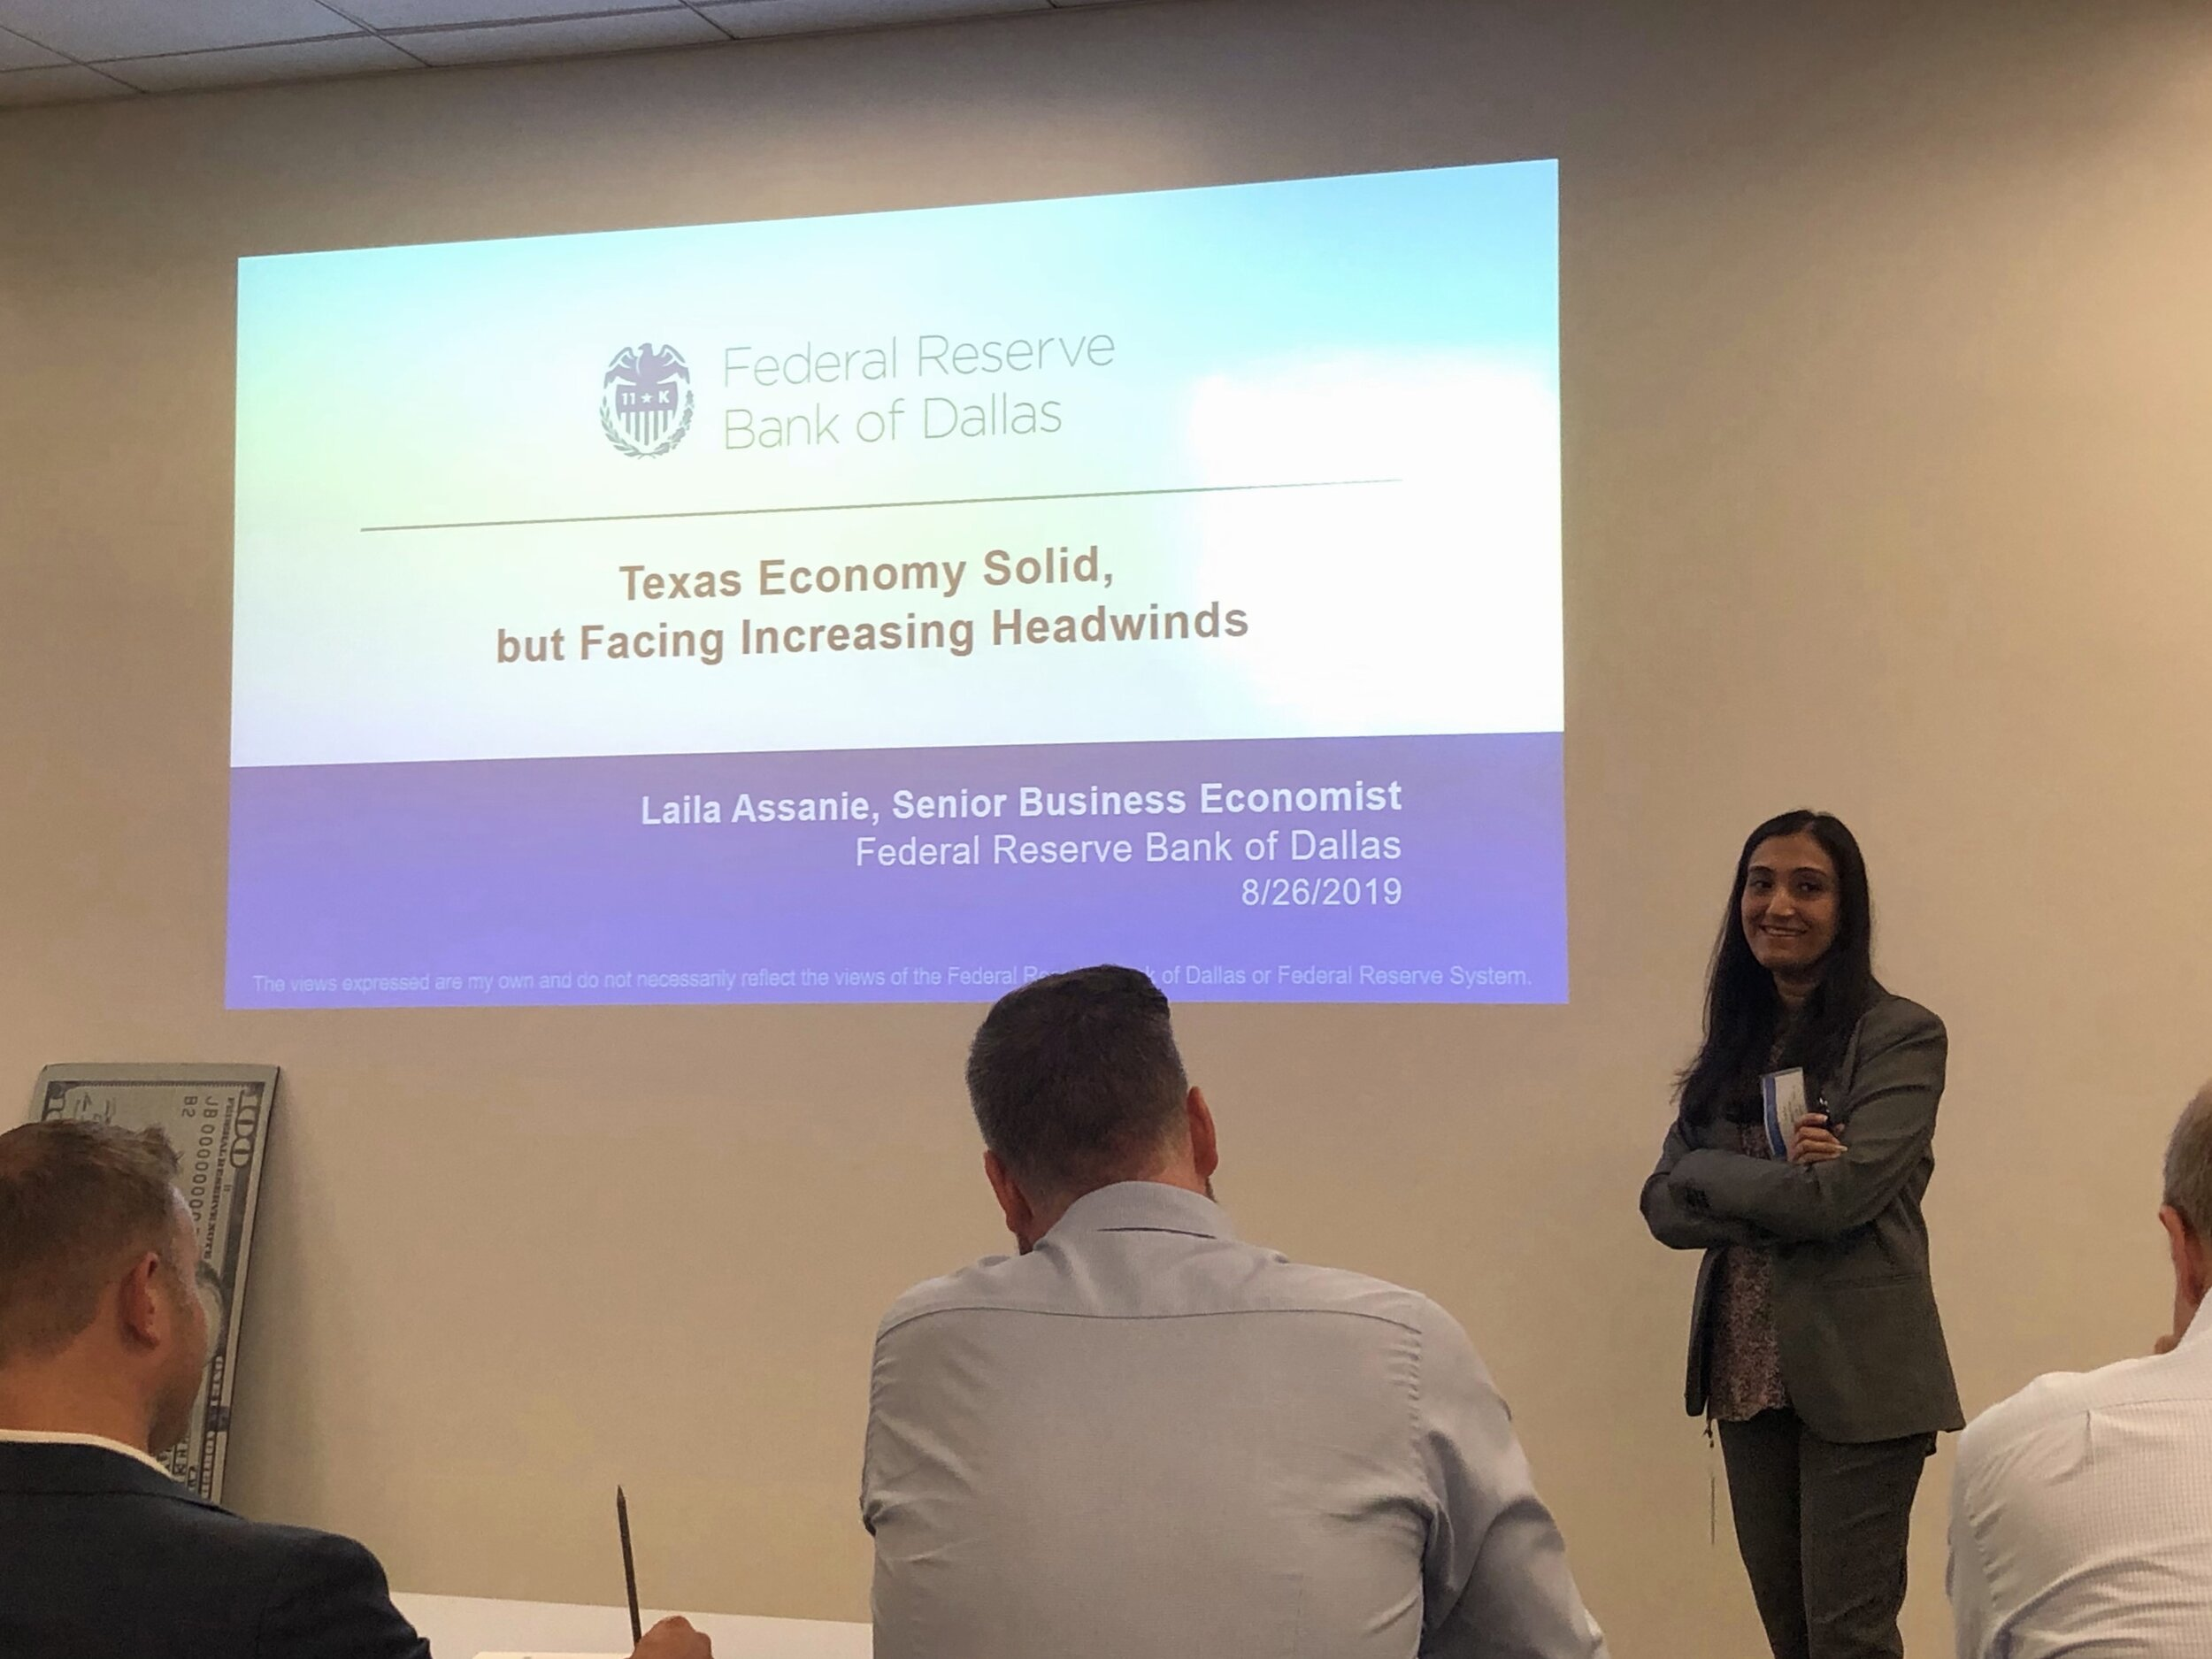 Laila Assanie, Senior Business Economist at the Federal Reserve Bank of Dallas